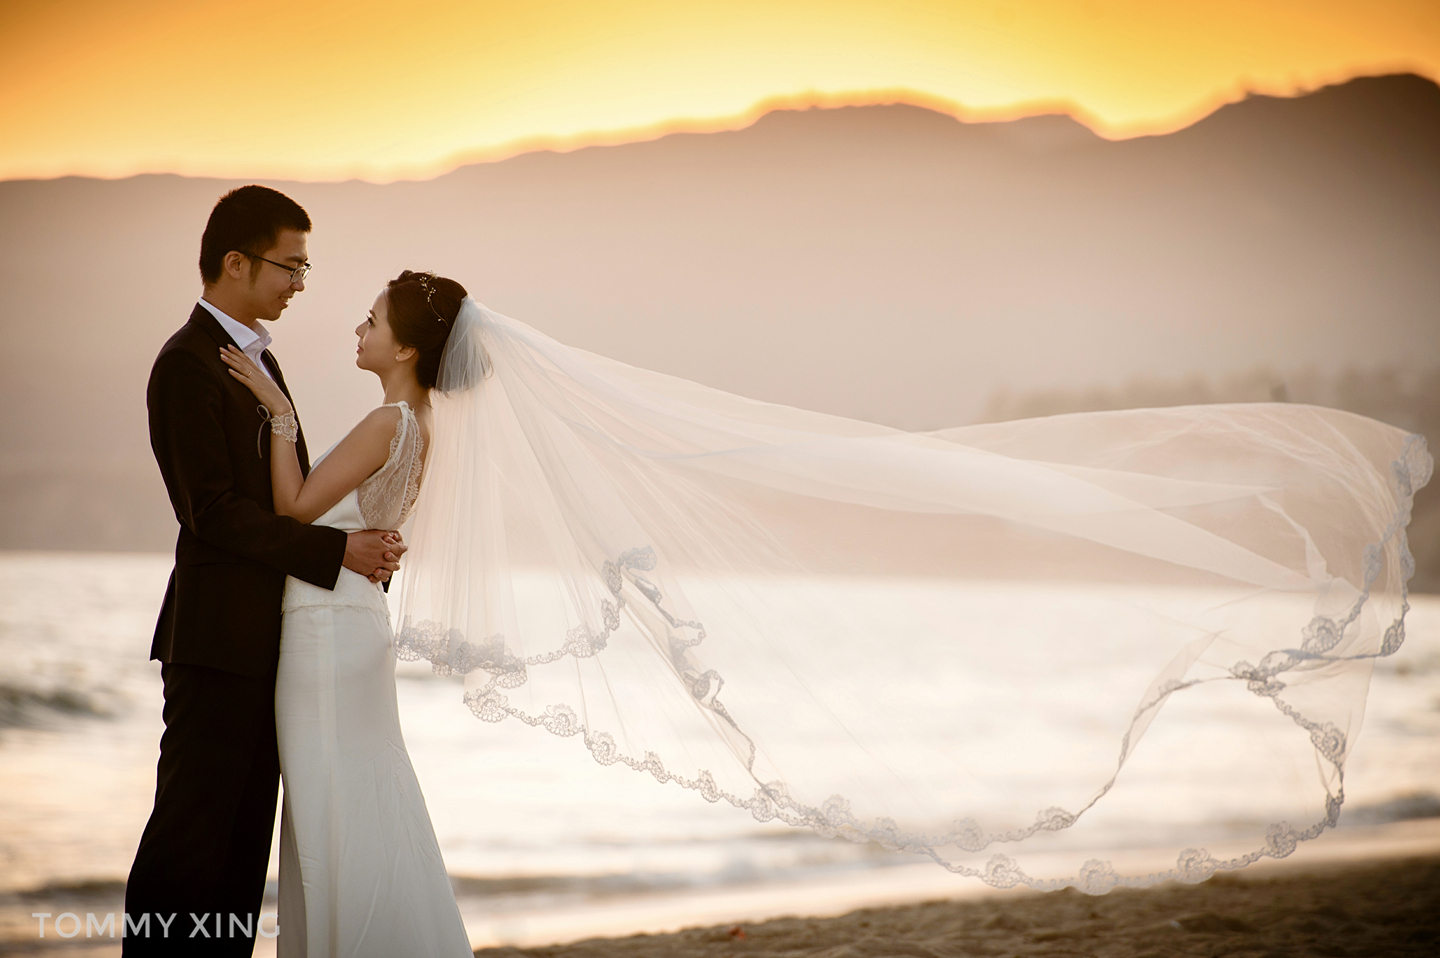 Los Angeles per-wedding 洛杉矶婚纱照 by Tommy Xing Photography 21.jpg